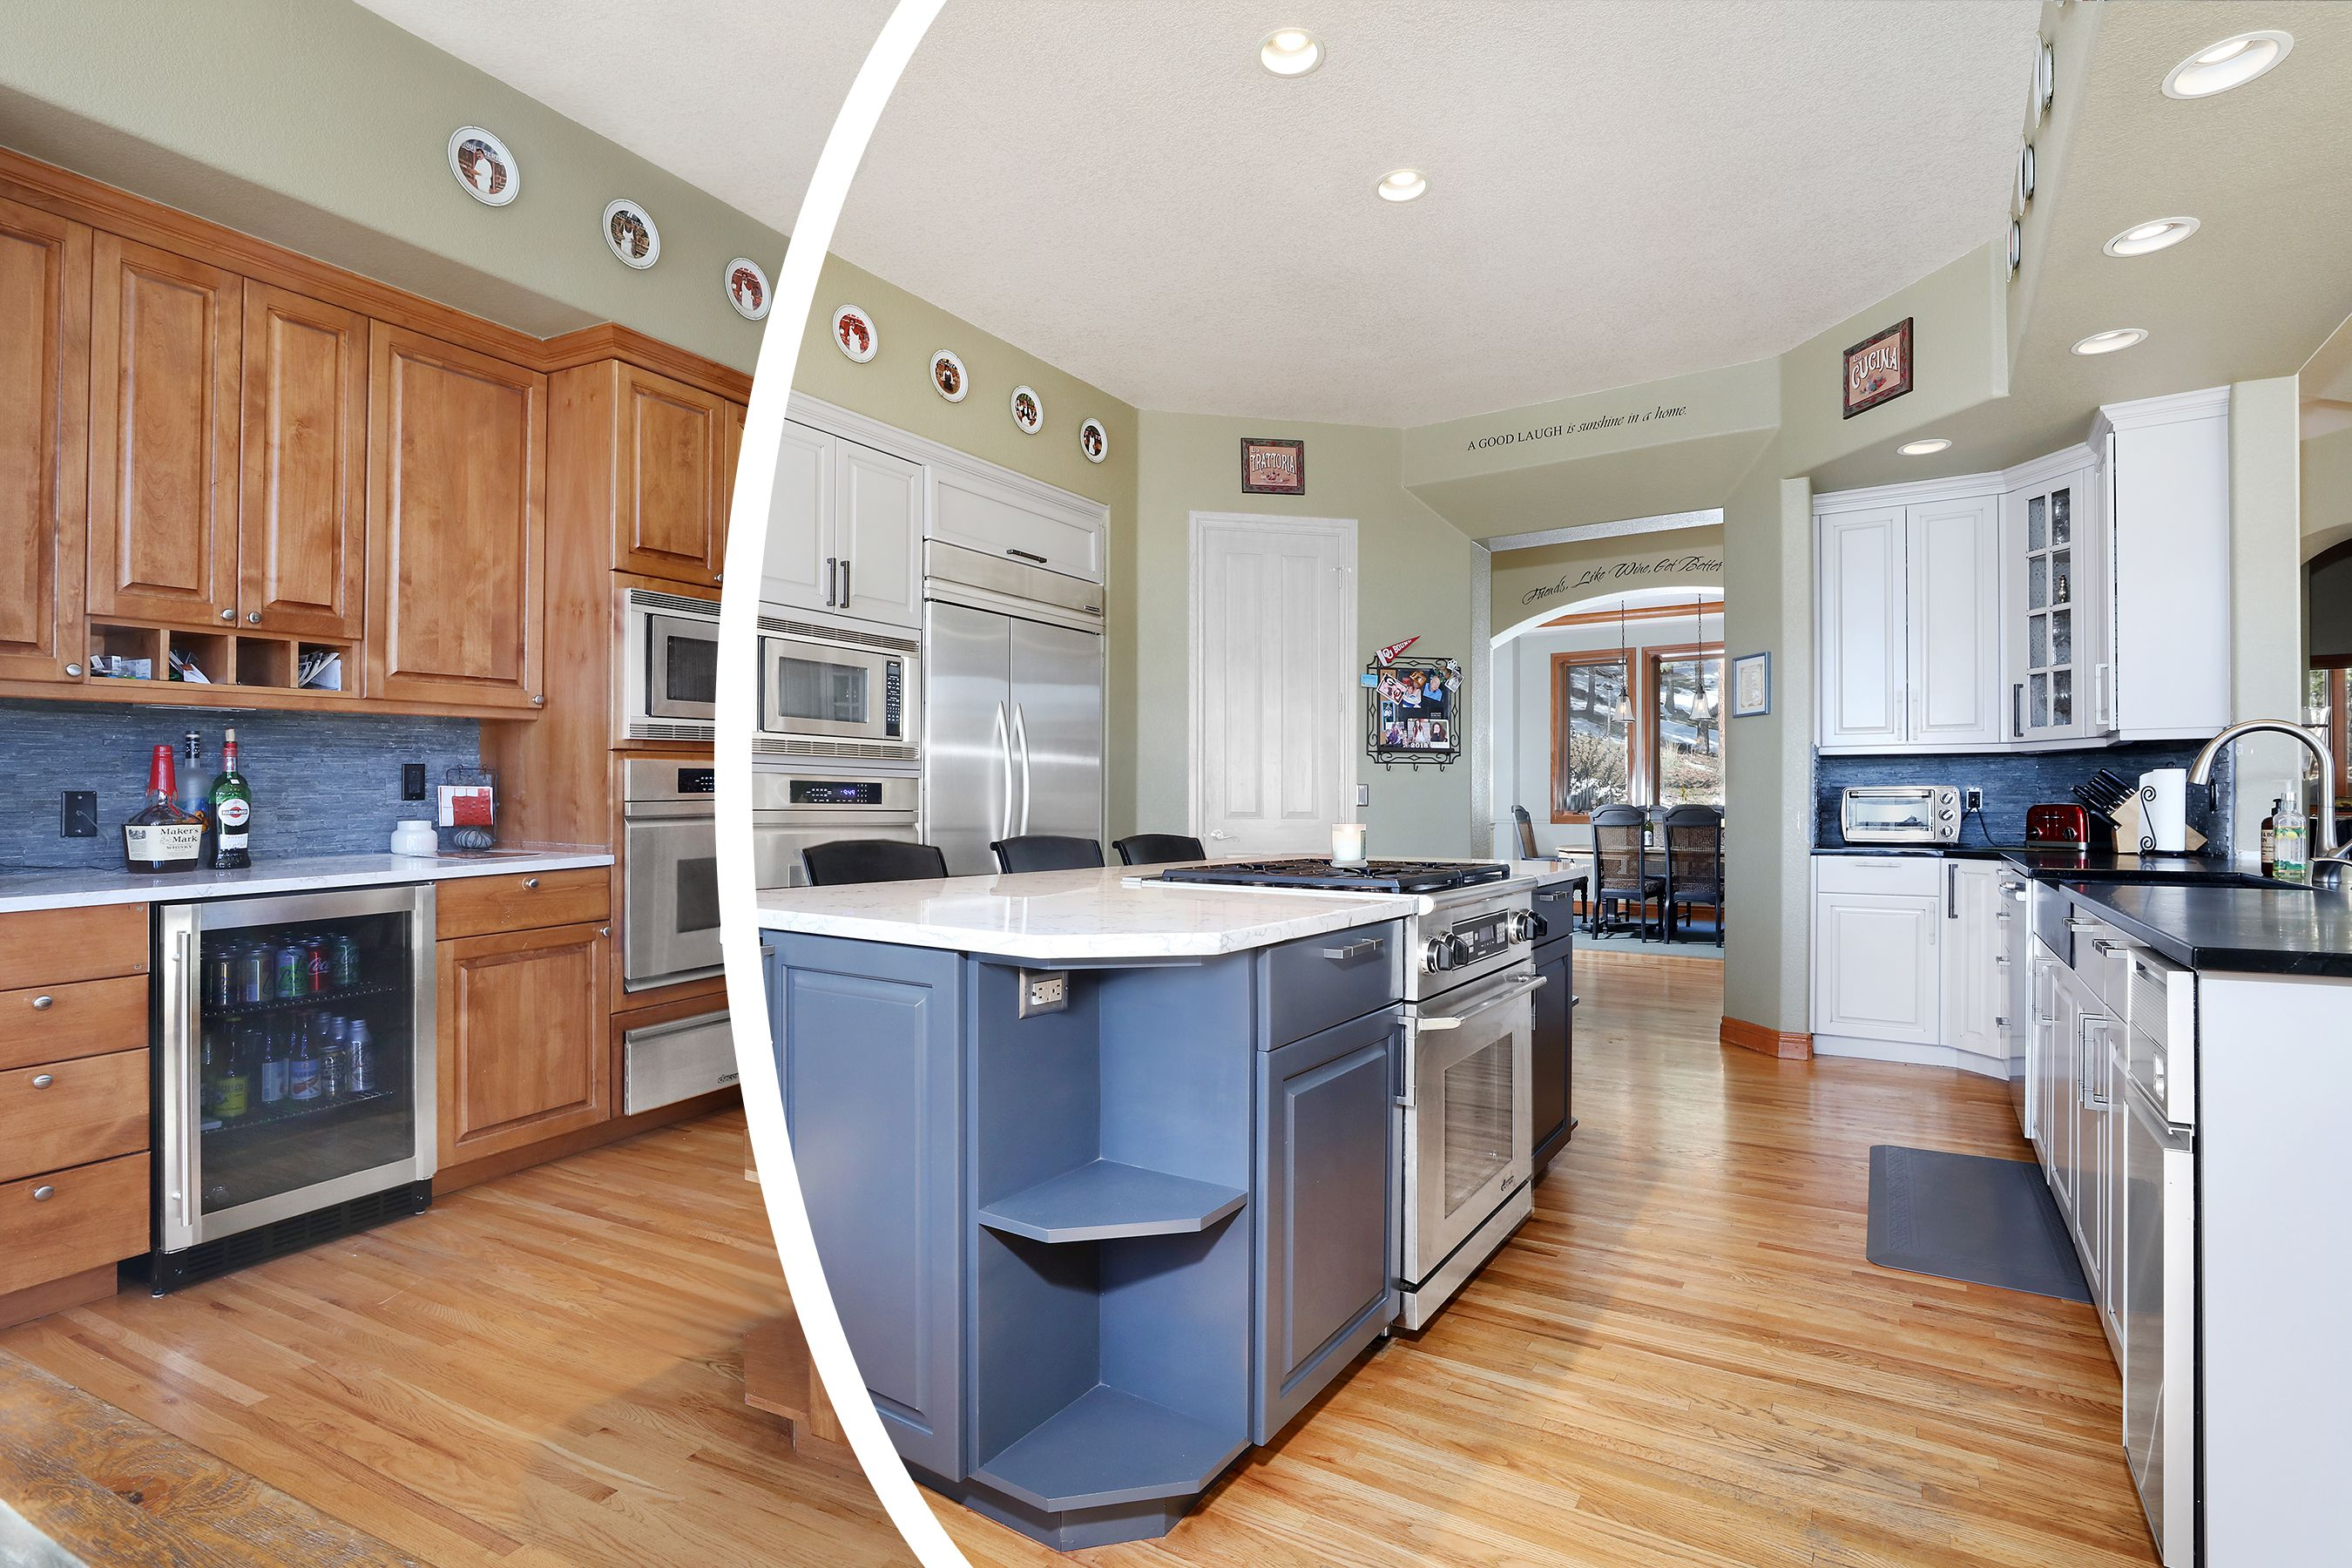 Two Tones Kitchen Cabinets Kitchen Cabinet Colors Kitchen Cabinet Painters Two Tone Kitchen Cabinets